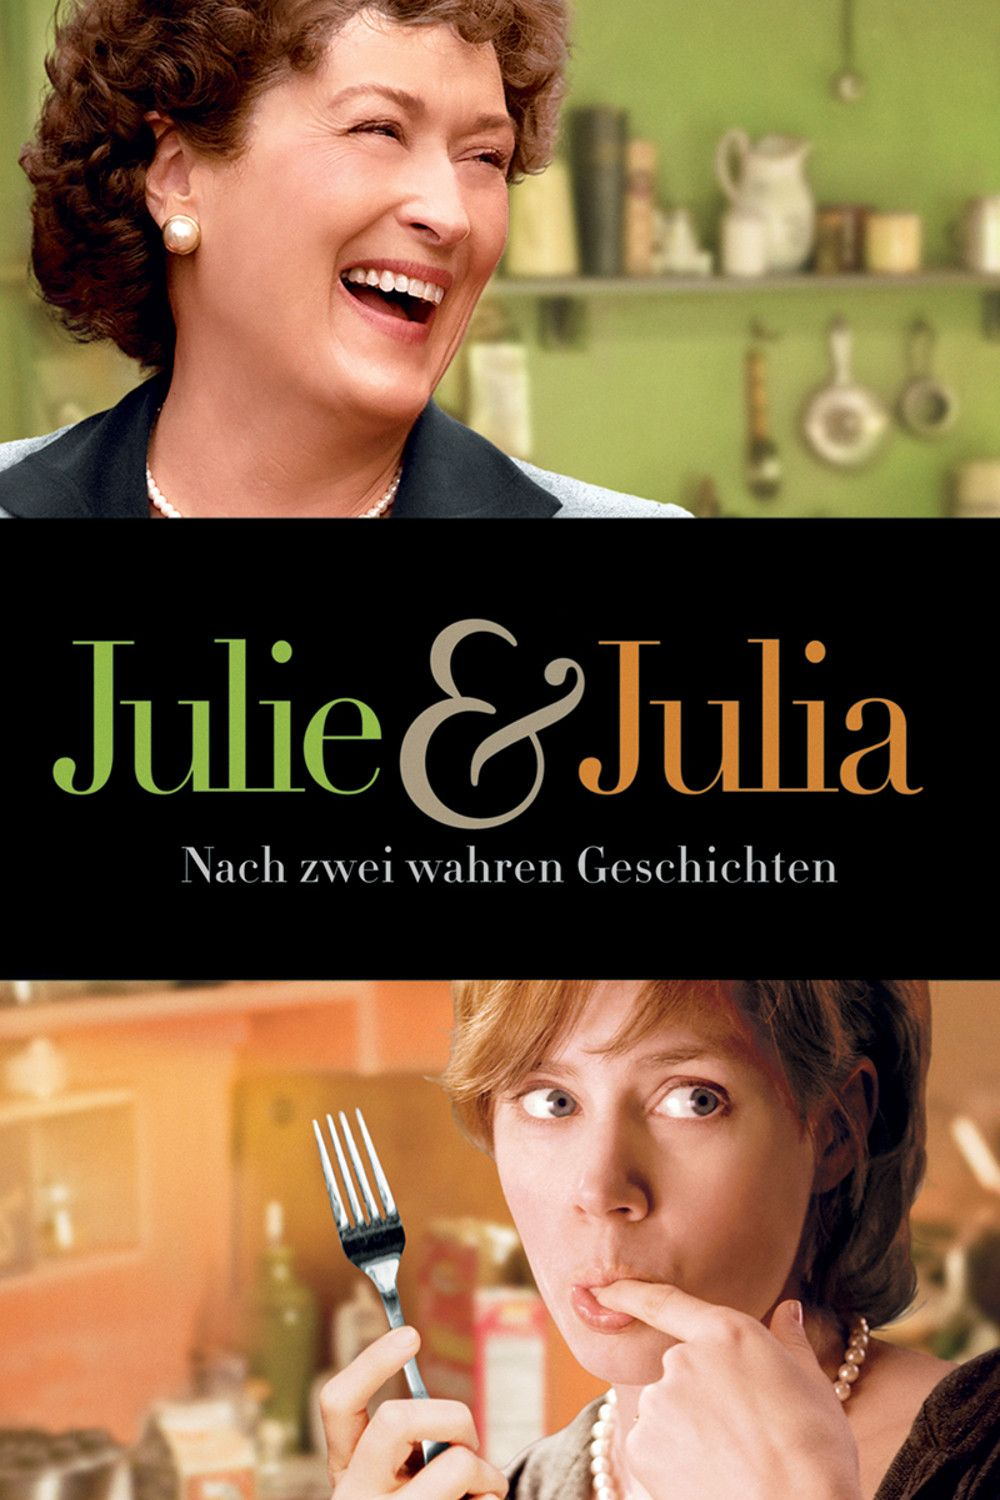 Amore Cucina E Curry Streaming Italiano Julie Julia 2009 Filme Kostenlos Online Anschauen